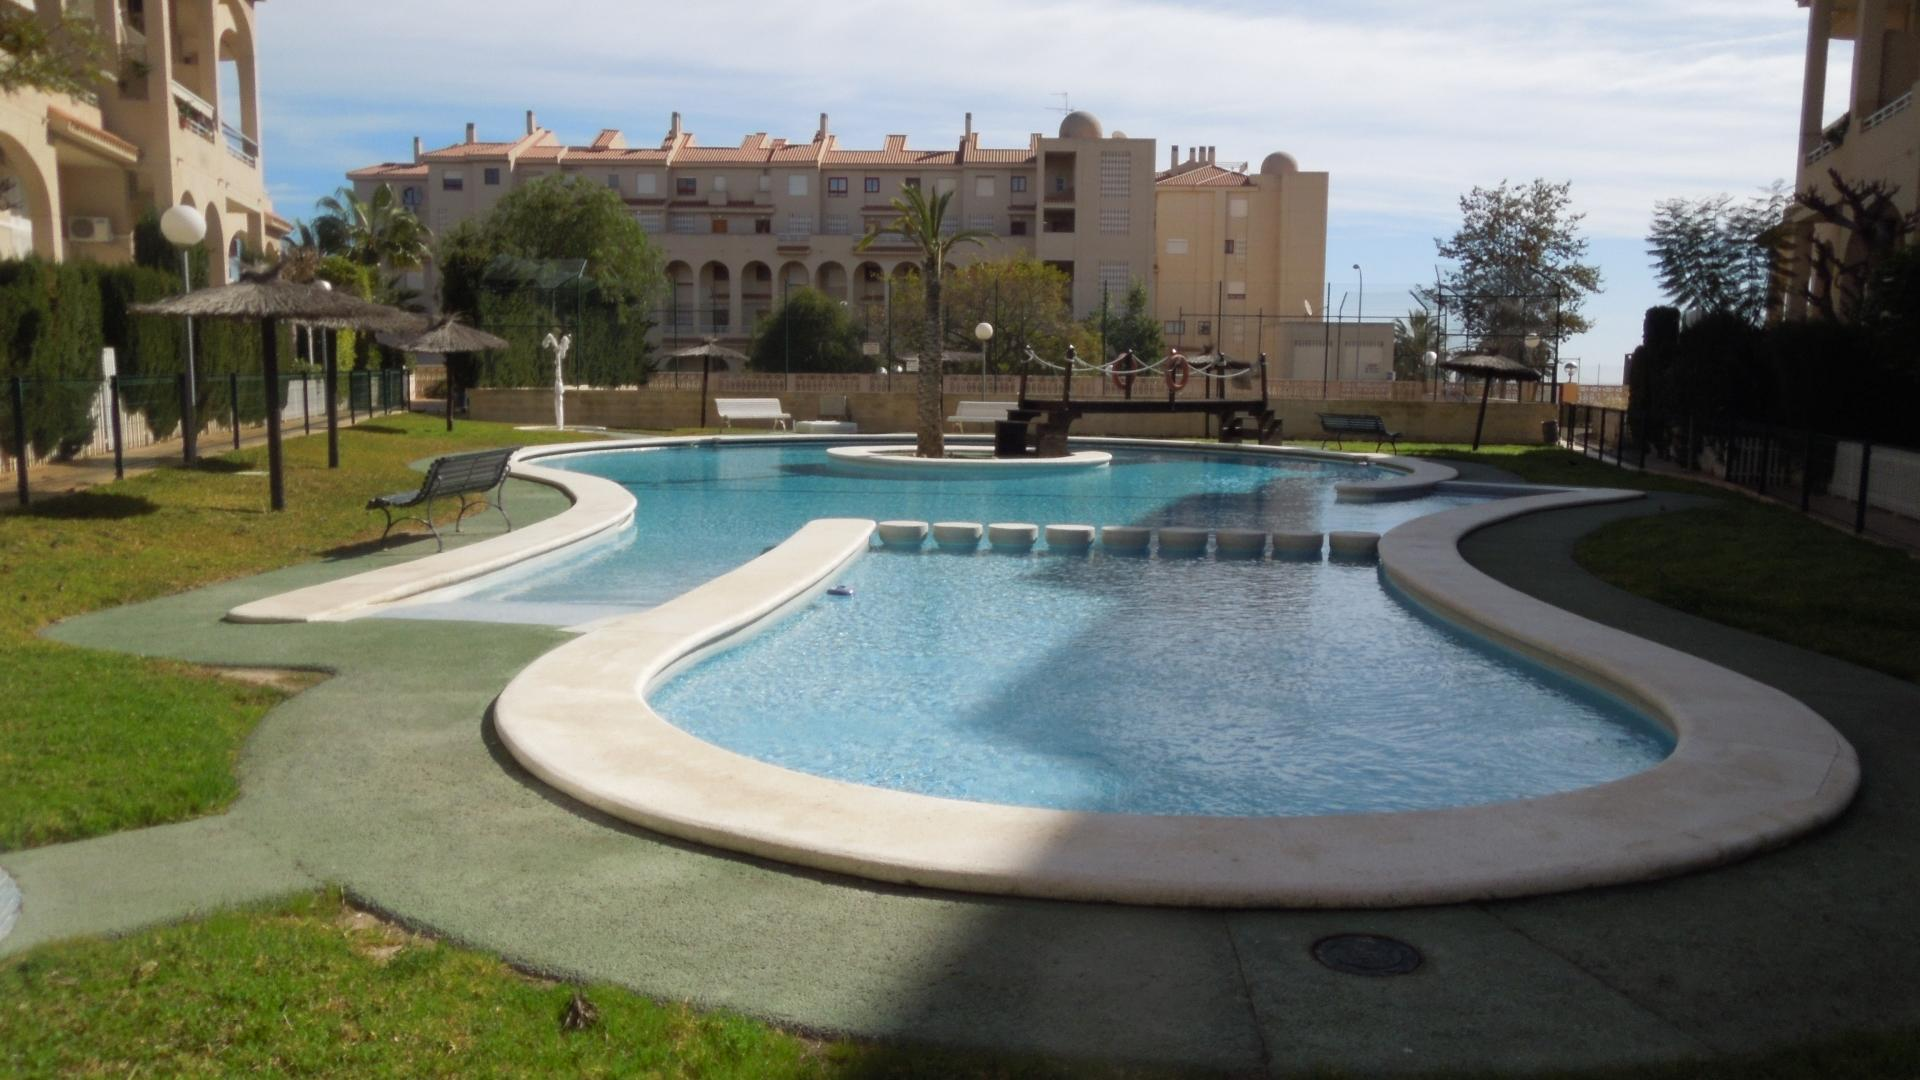 6 Bedroom Ground floor apartment in Mainland, Spain